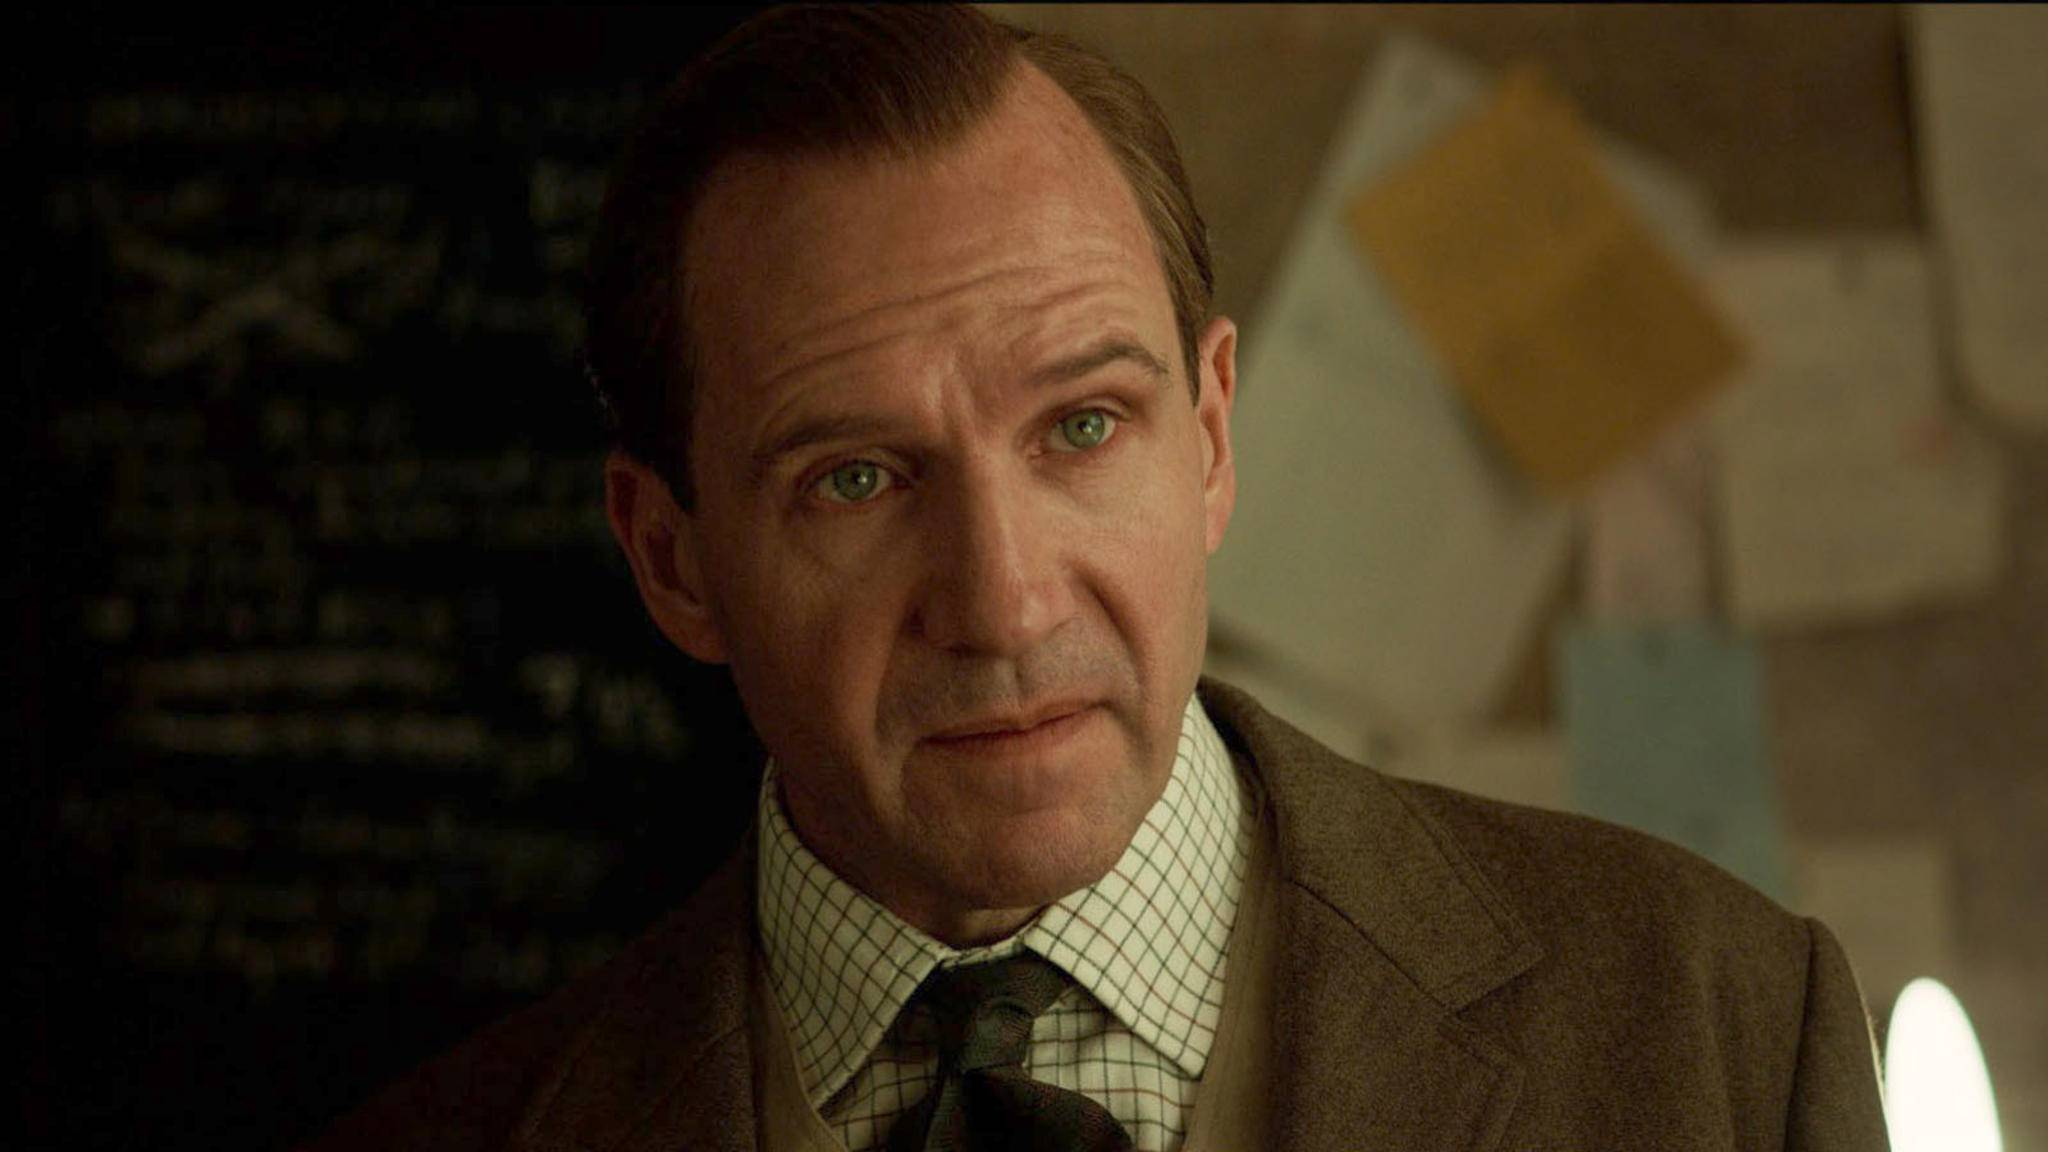 Ralph Fiennes in The King's Man